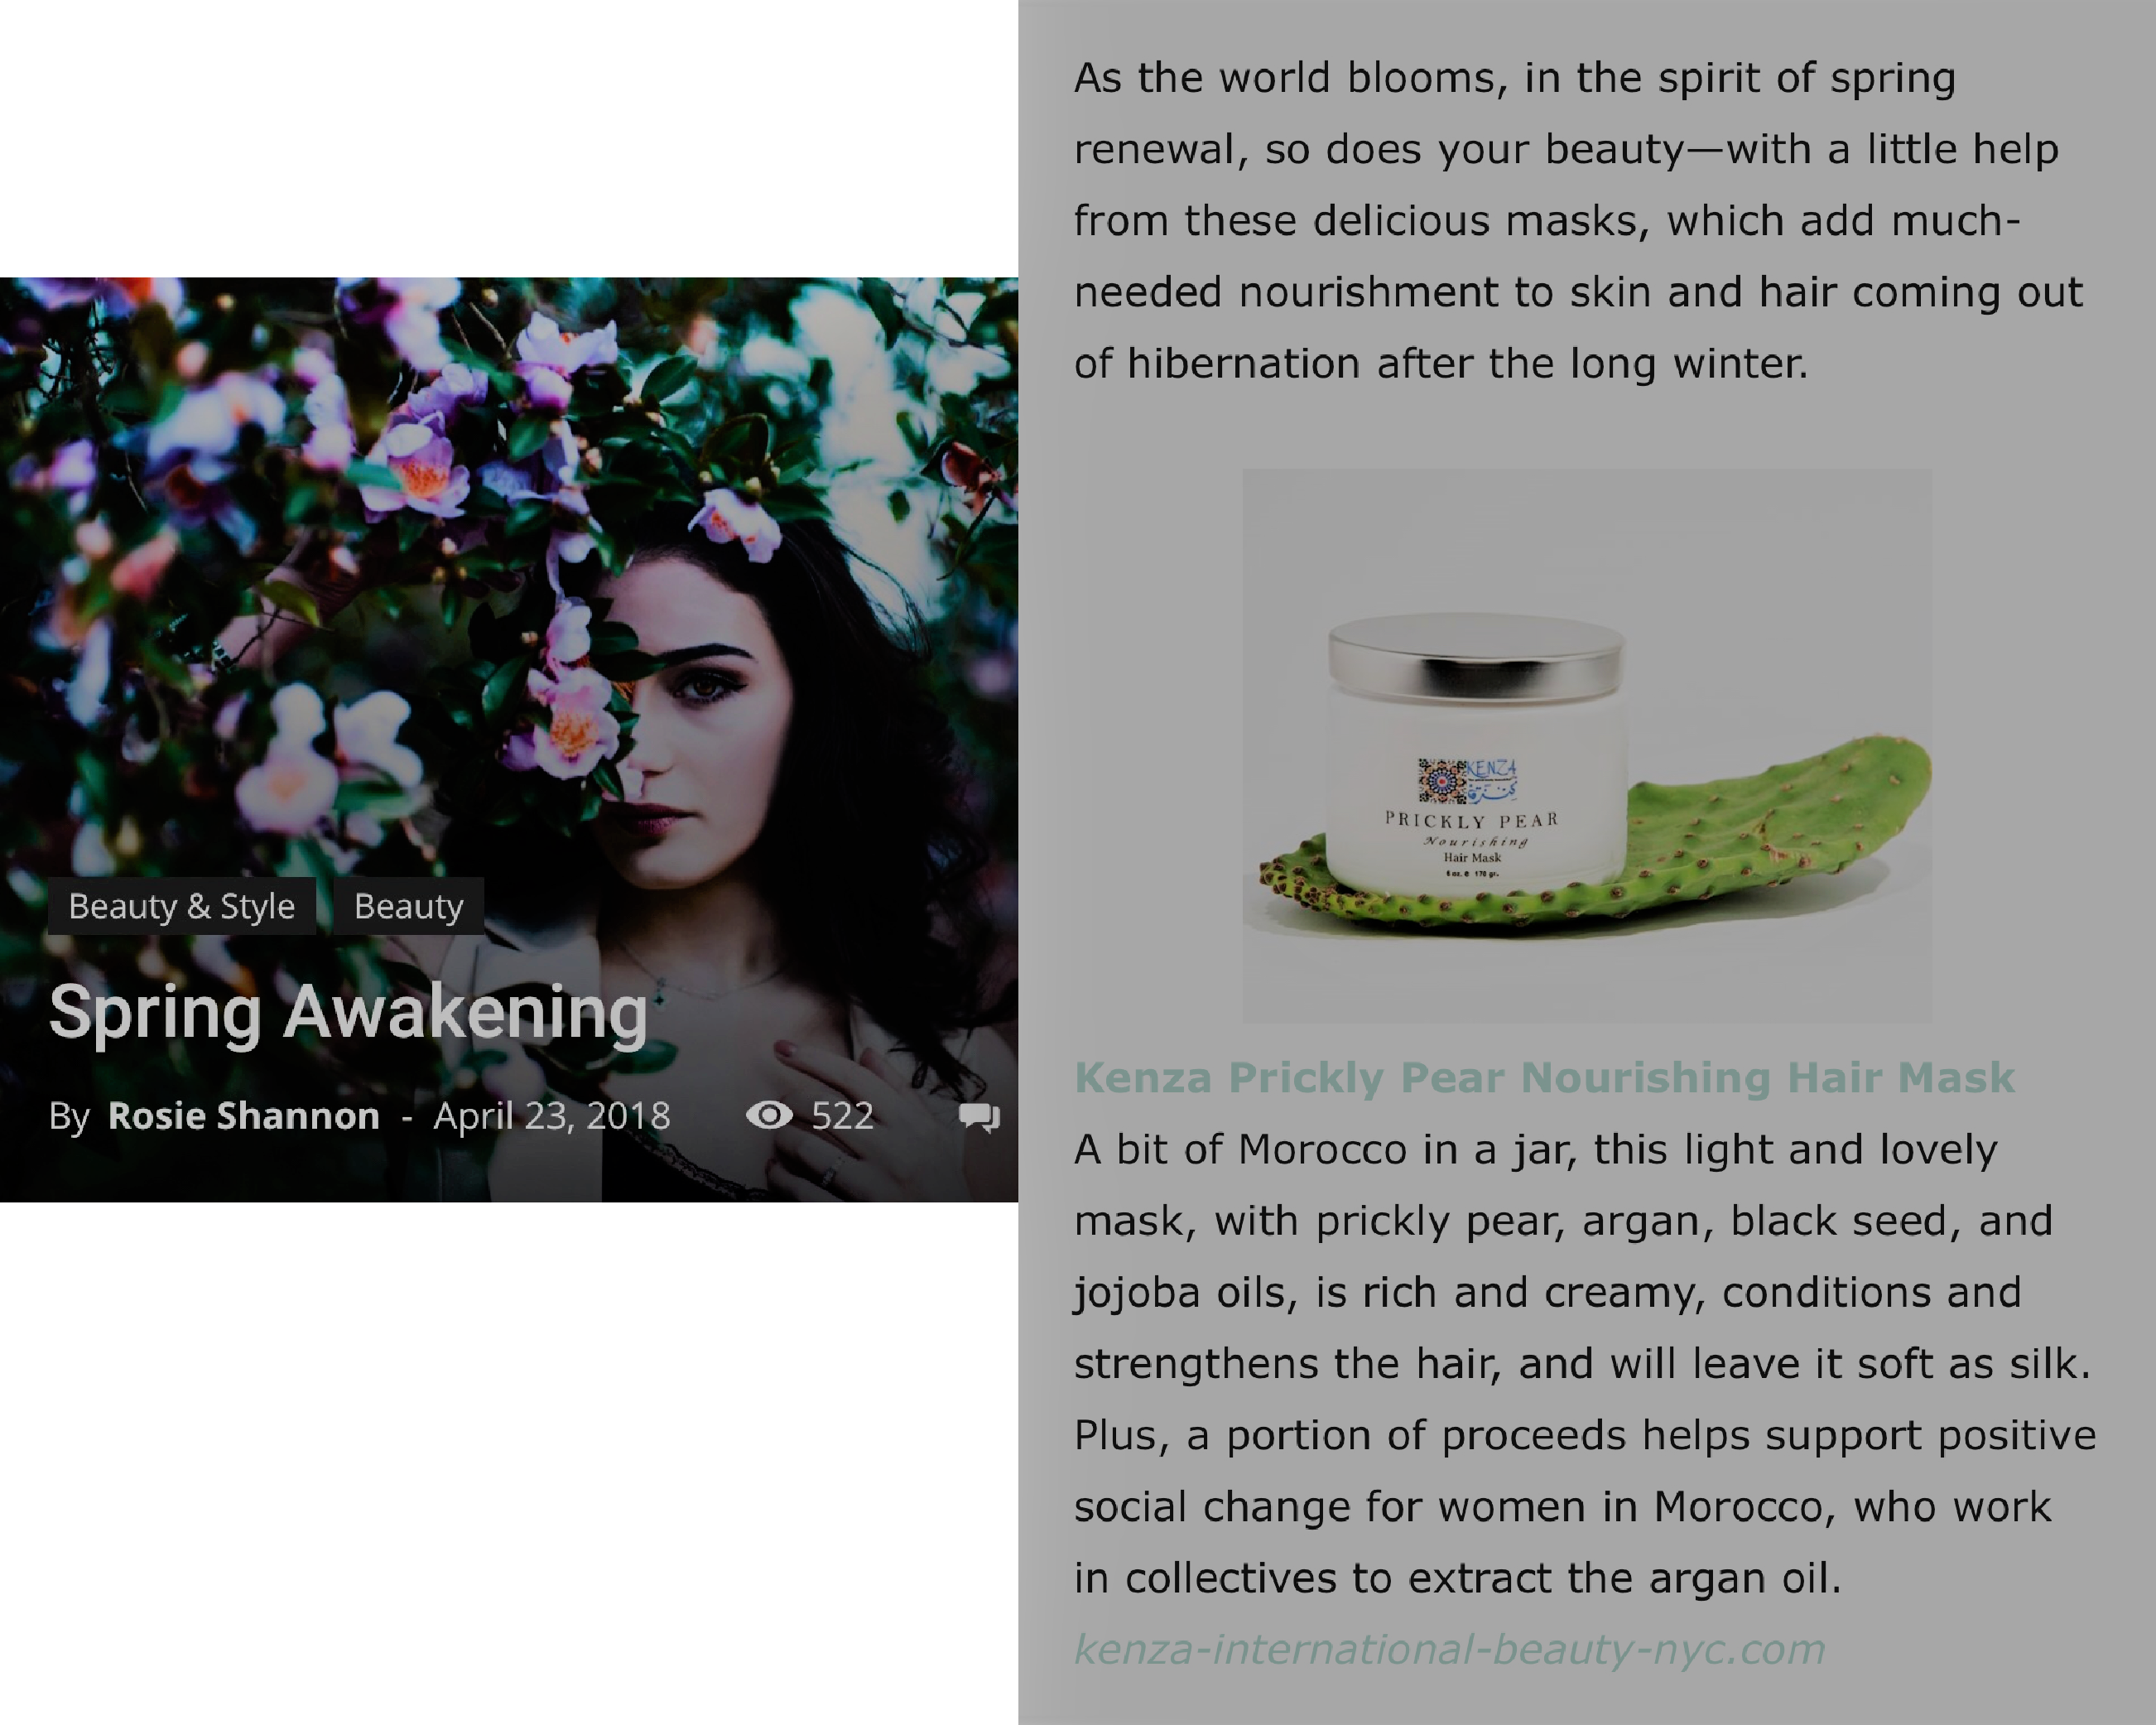 KENZA Prickly Pear Hair Mask featured in FAEIRE Magazine